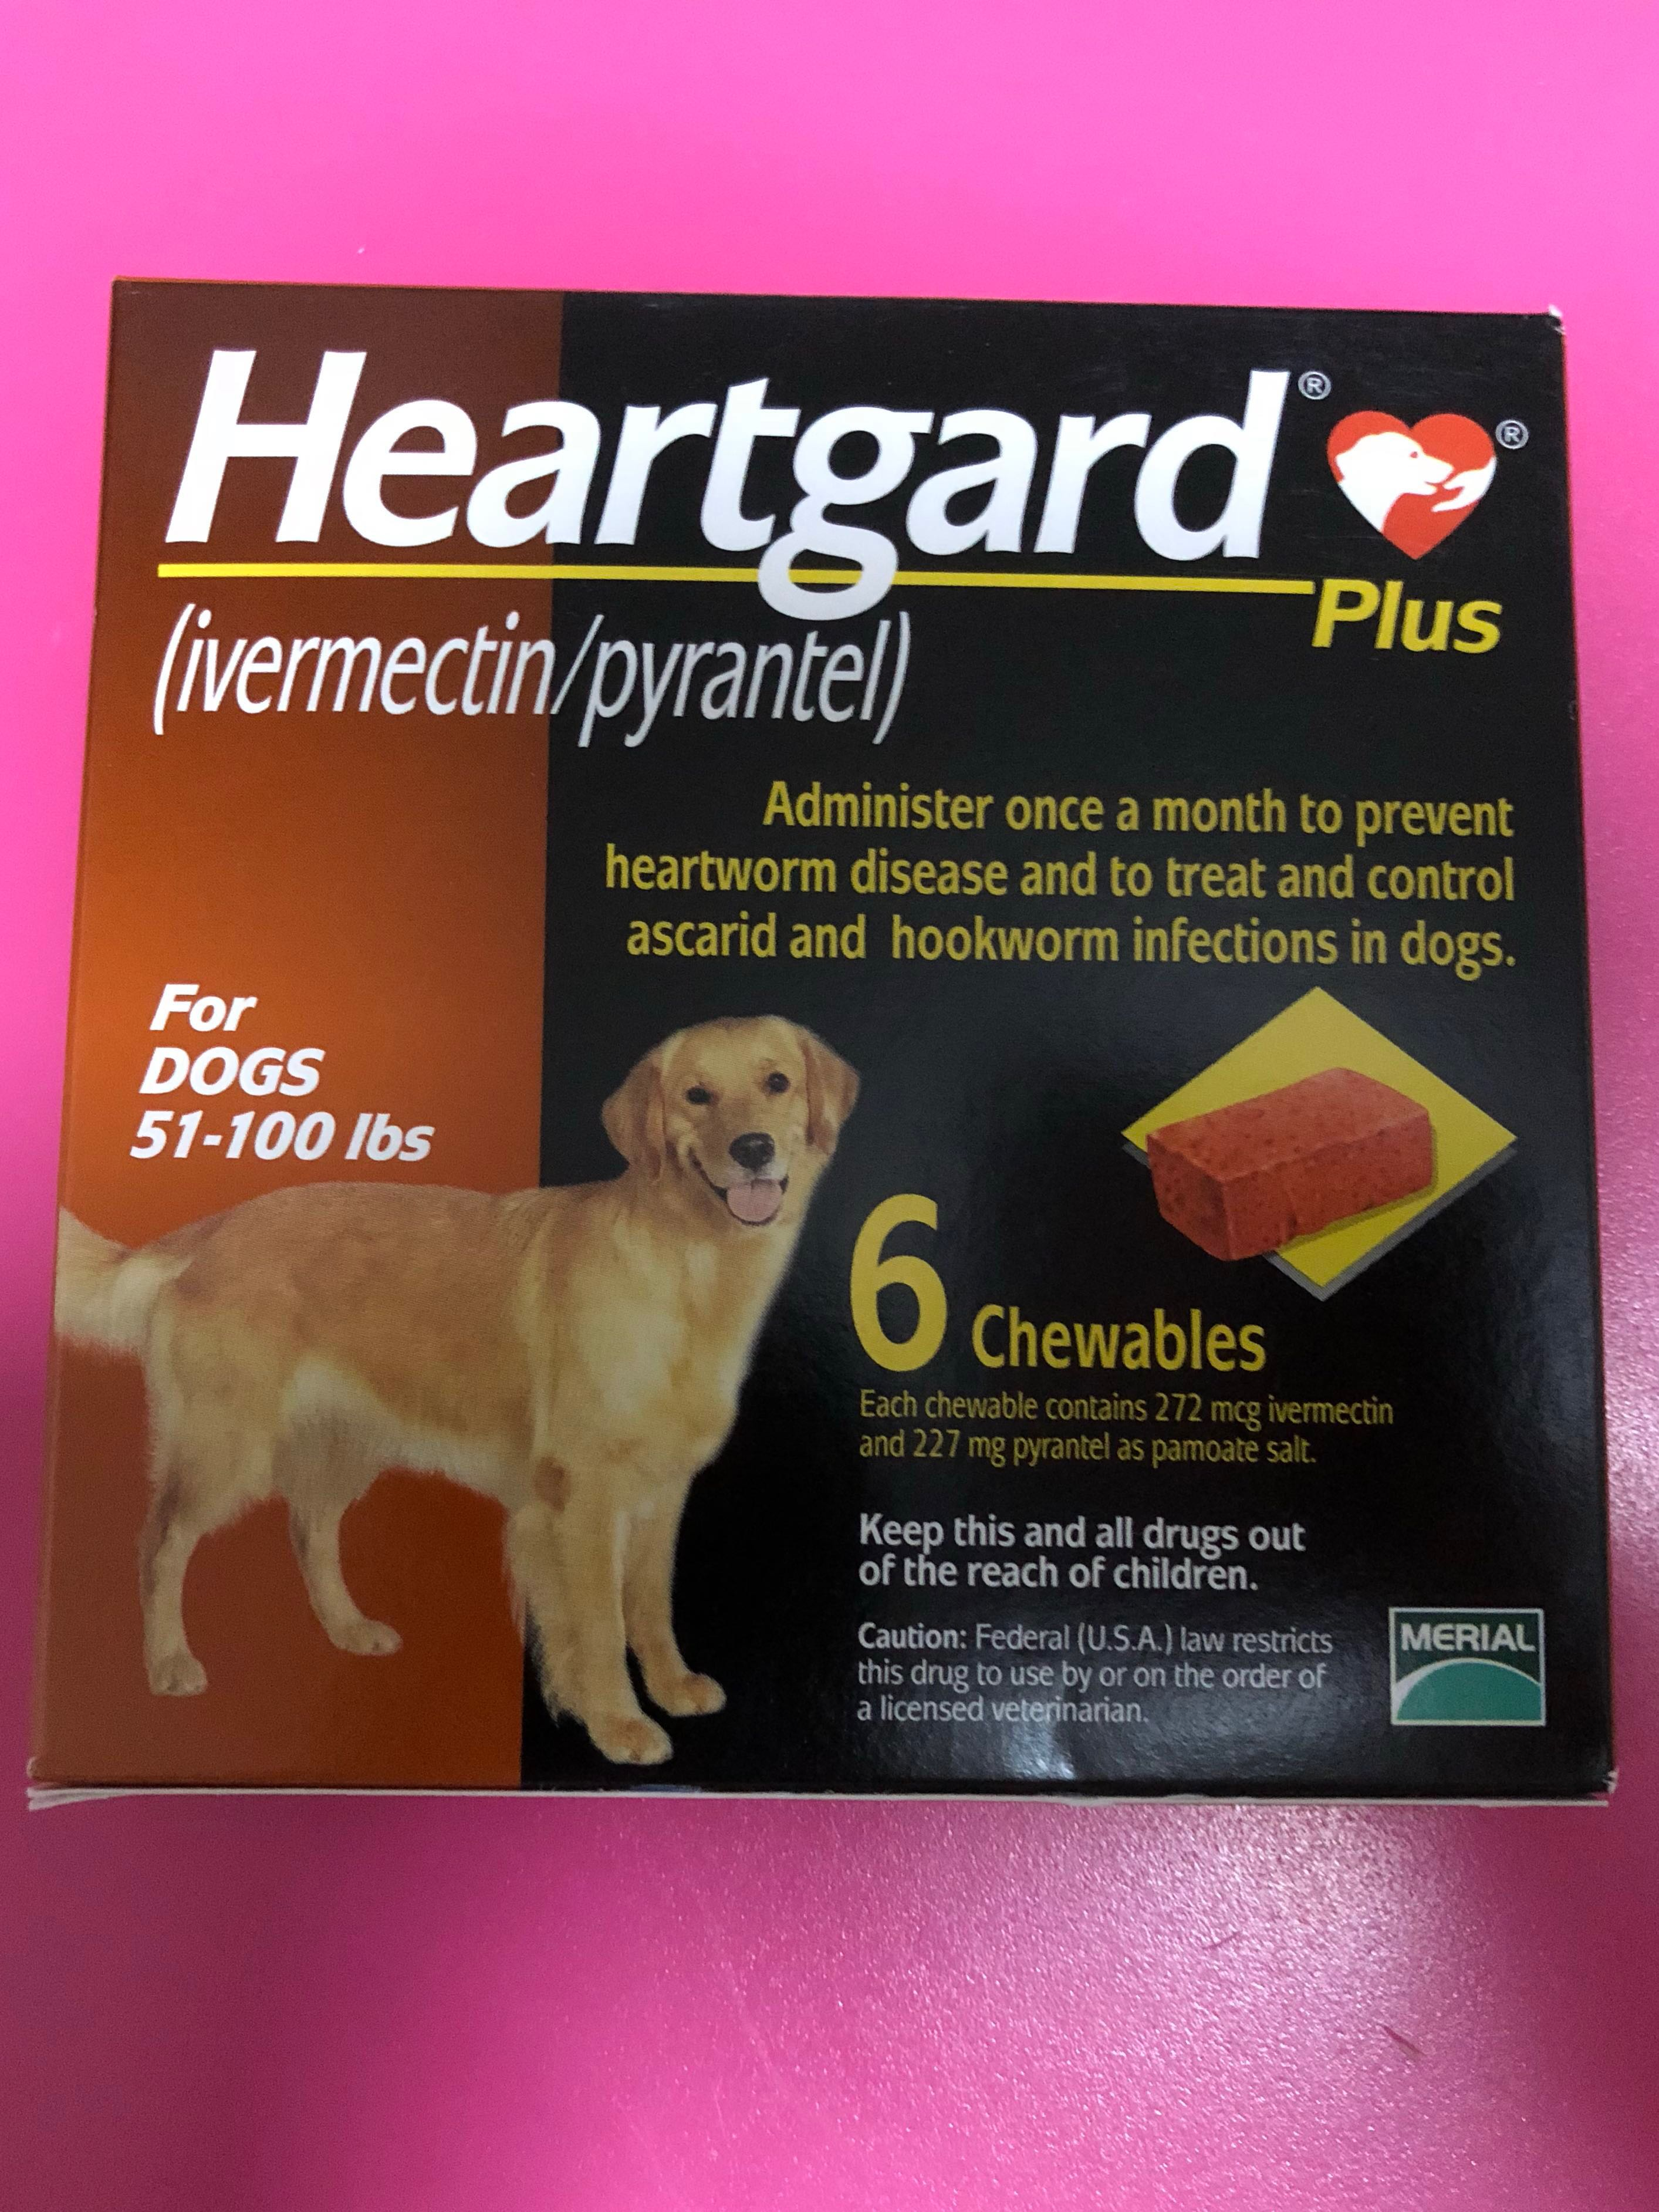 Heartgard Plus - Large dogs, Pet Supplies, For Dogs, Health